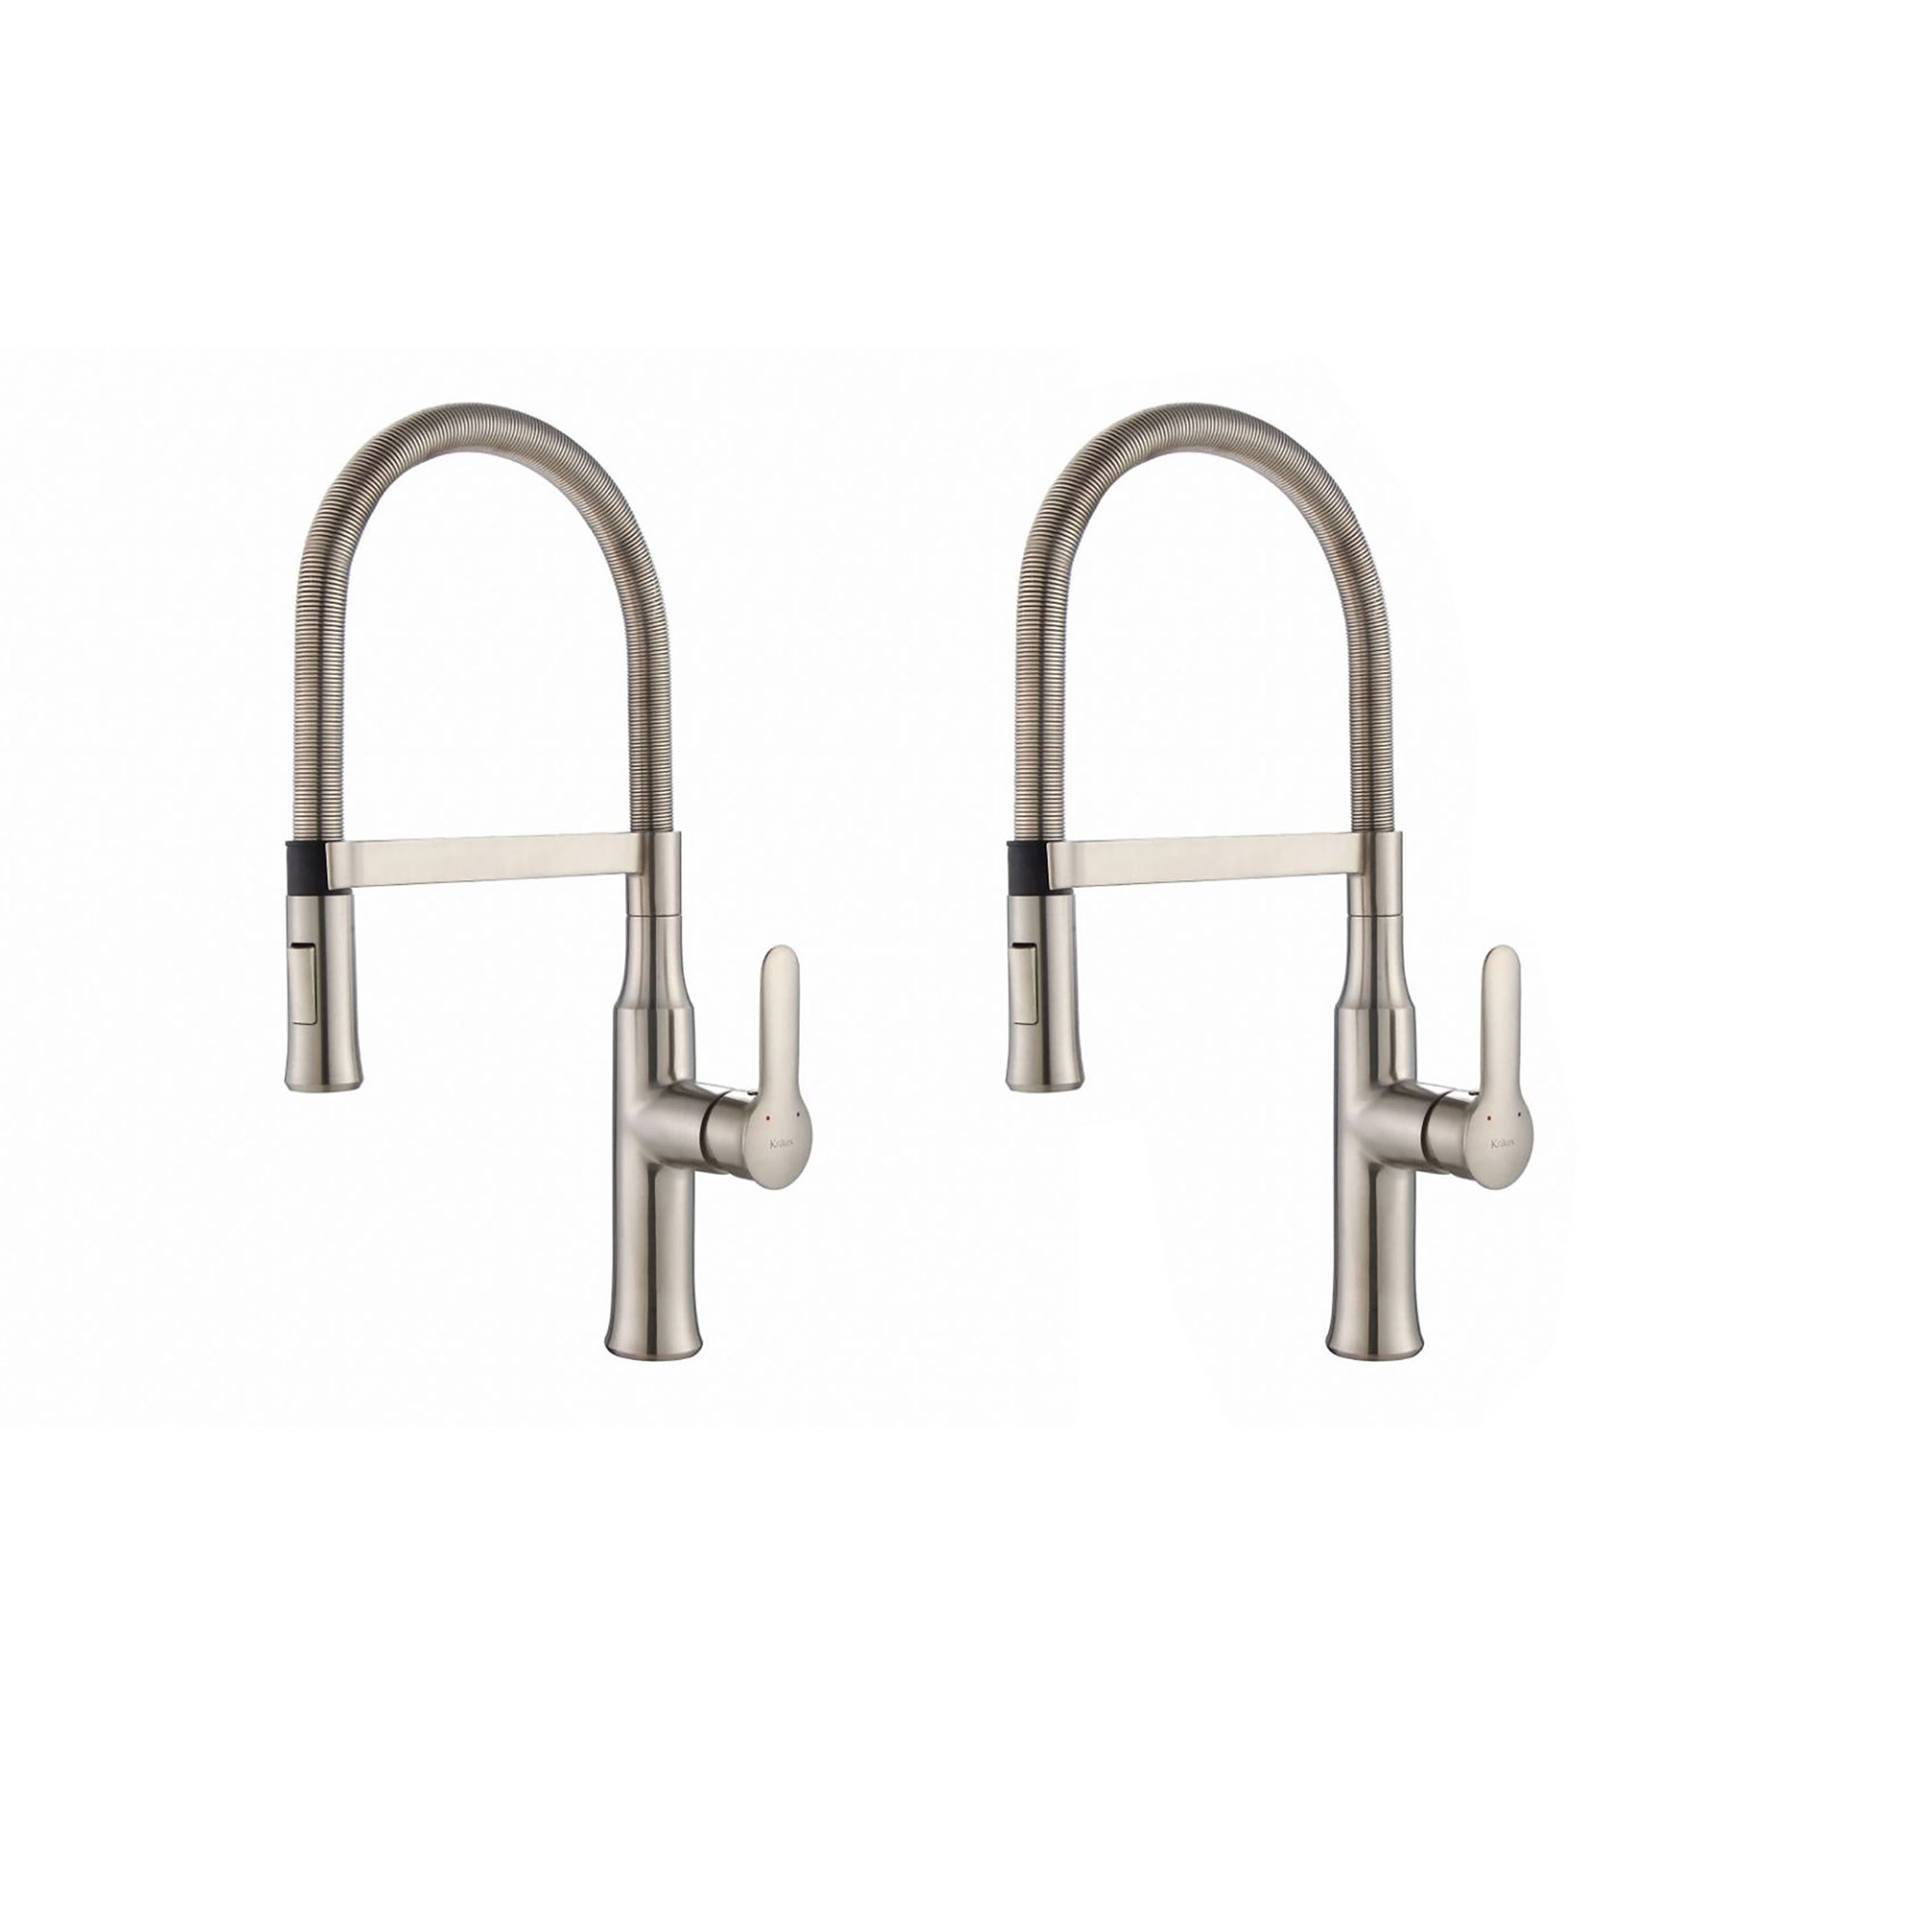 kitchen faucets stainless steel craftsman style cabinets kraus nola single lever pull down head faucet 2 pack